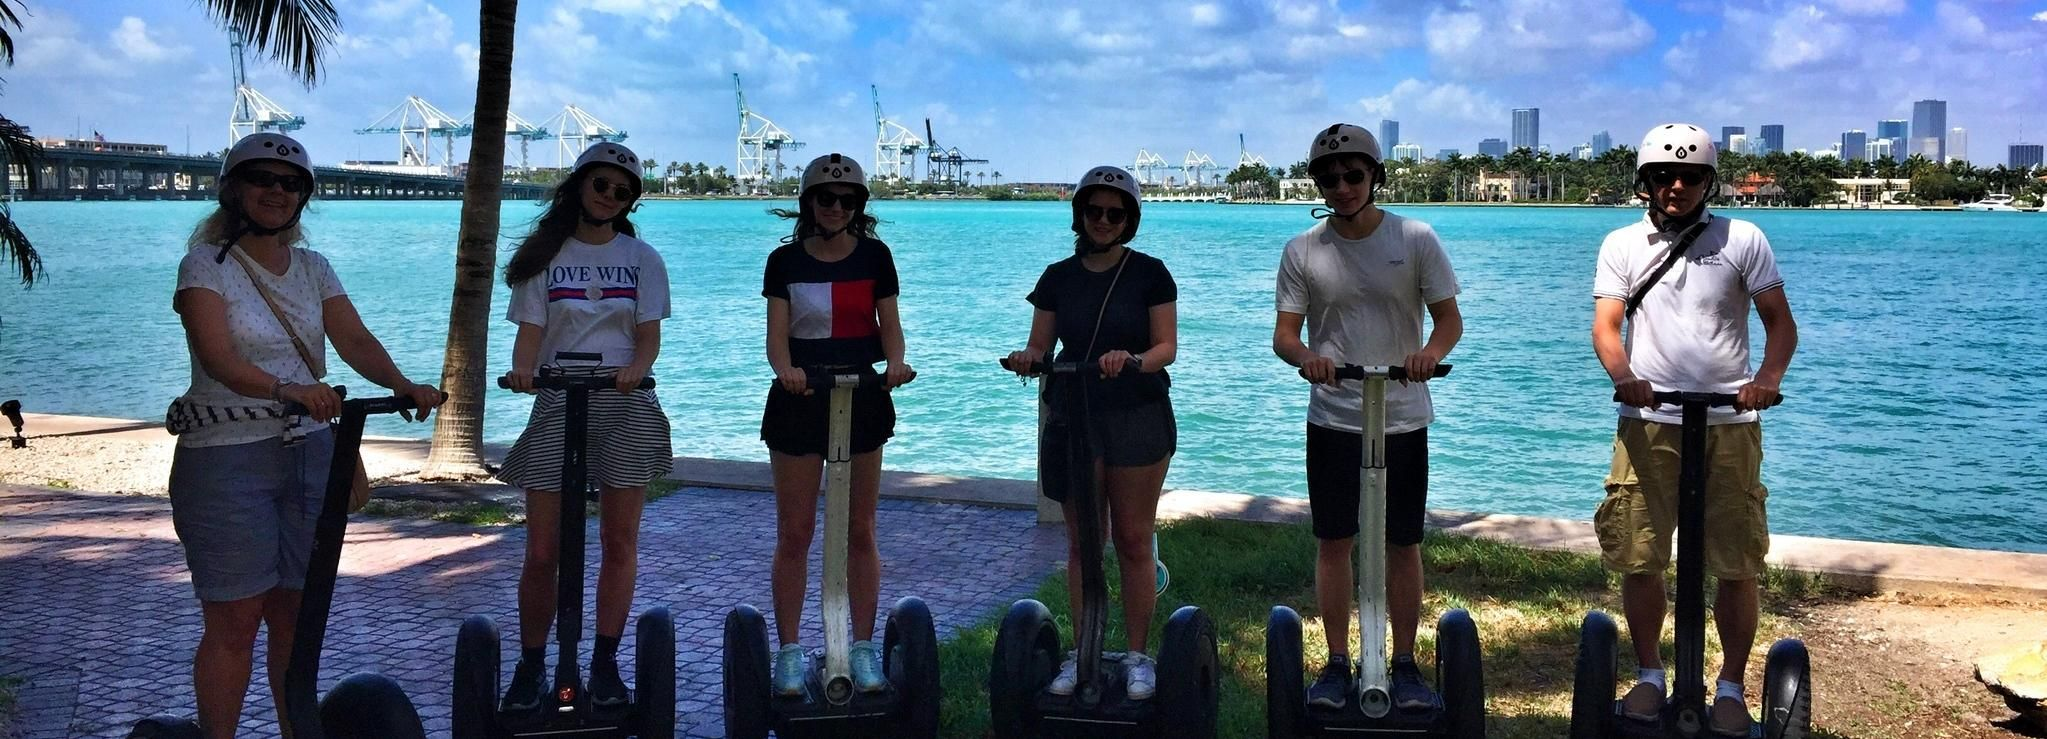 Miami Beach: Art Deco Segway Tour